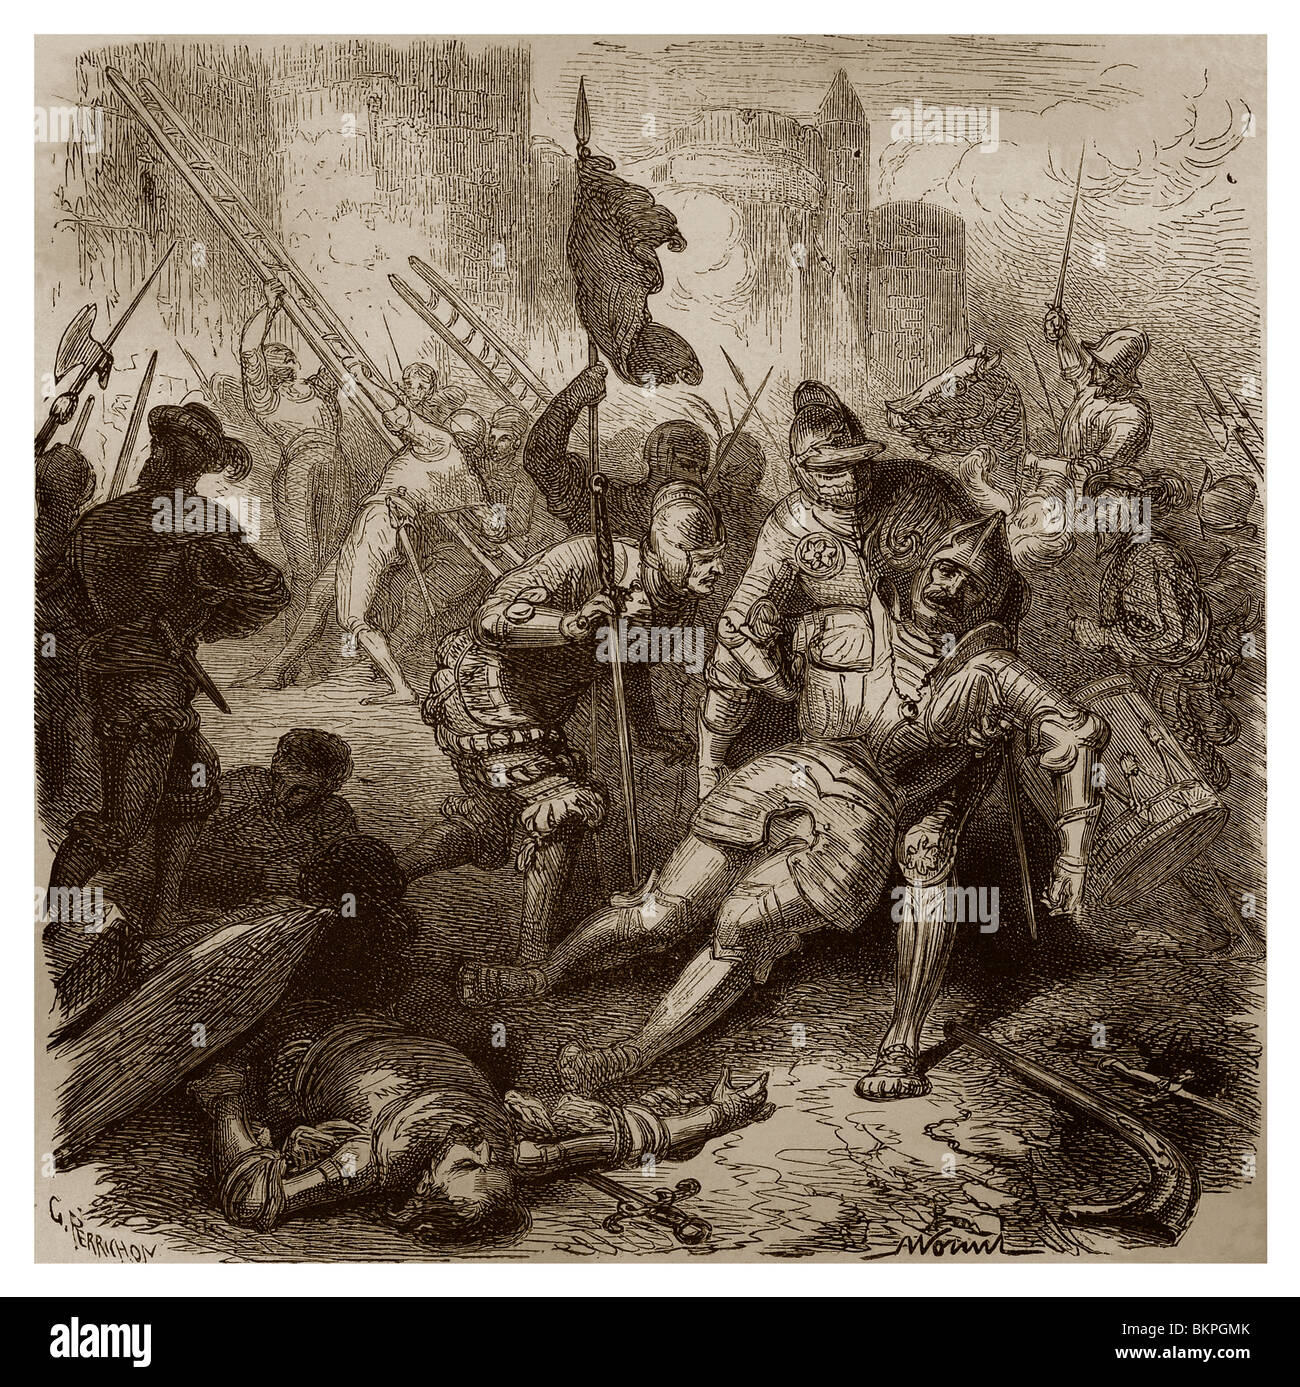 On 6th May 1527, during the assault of Rome, the Constable of Bourbon was